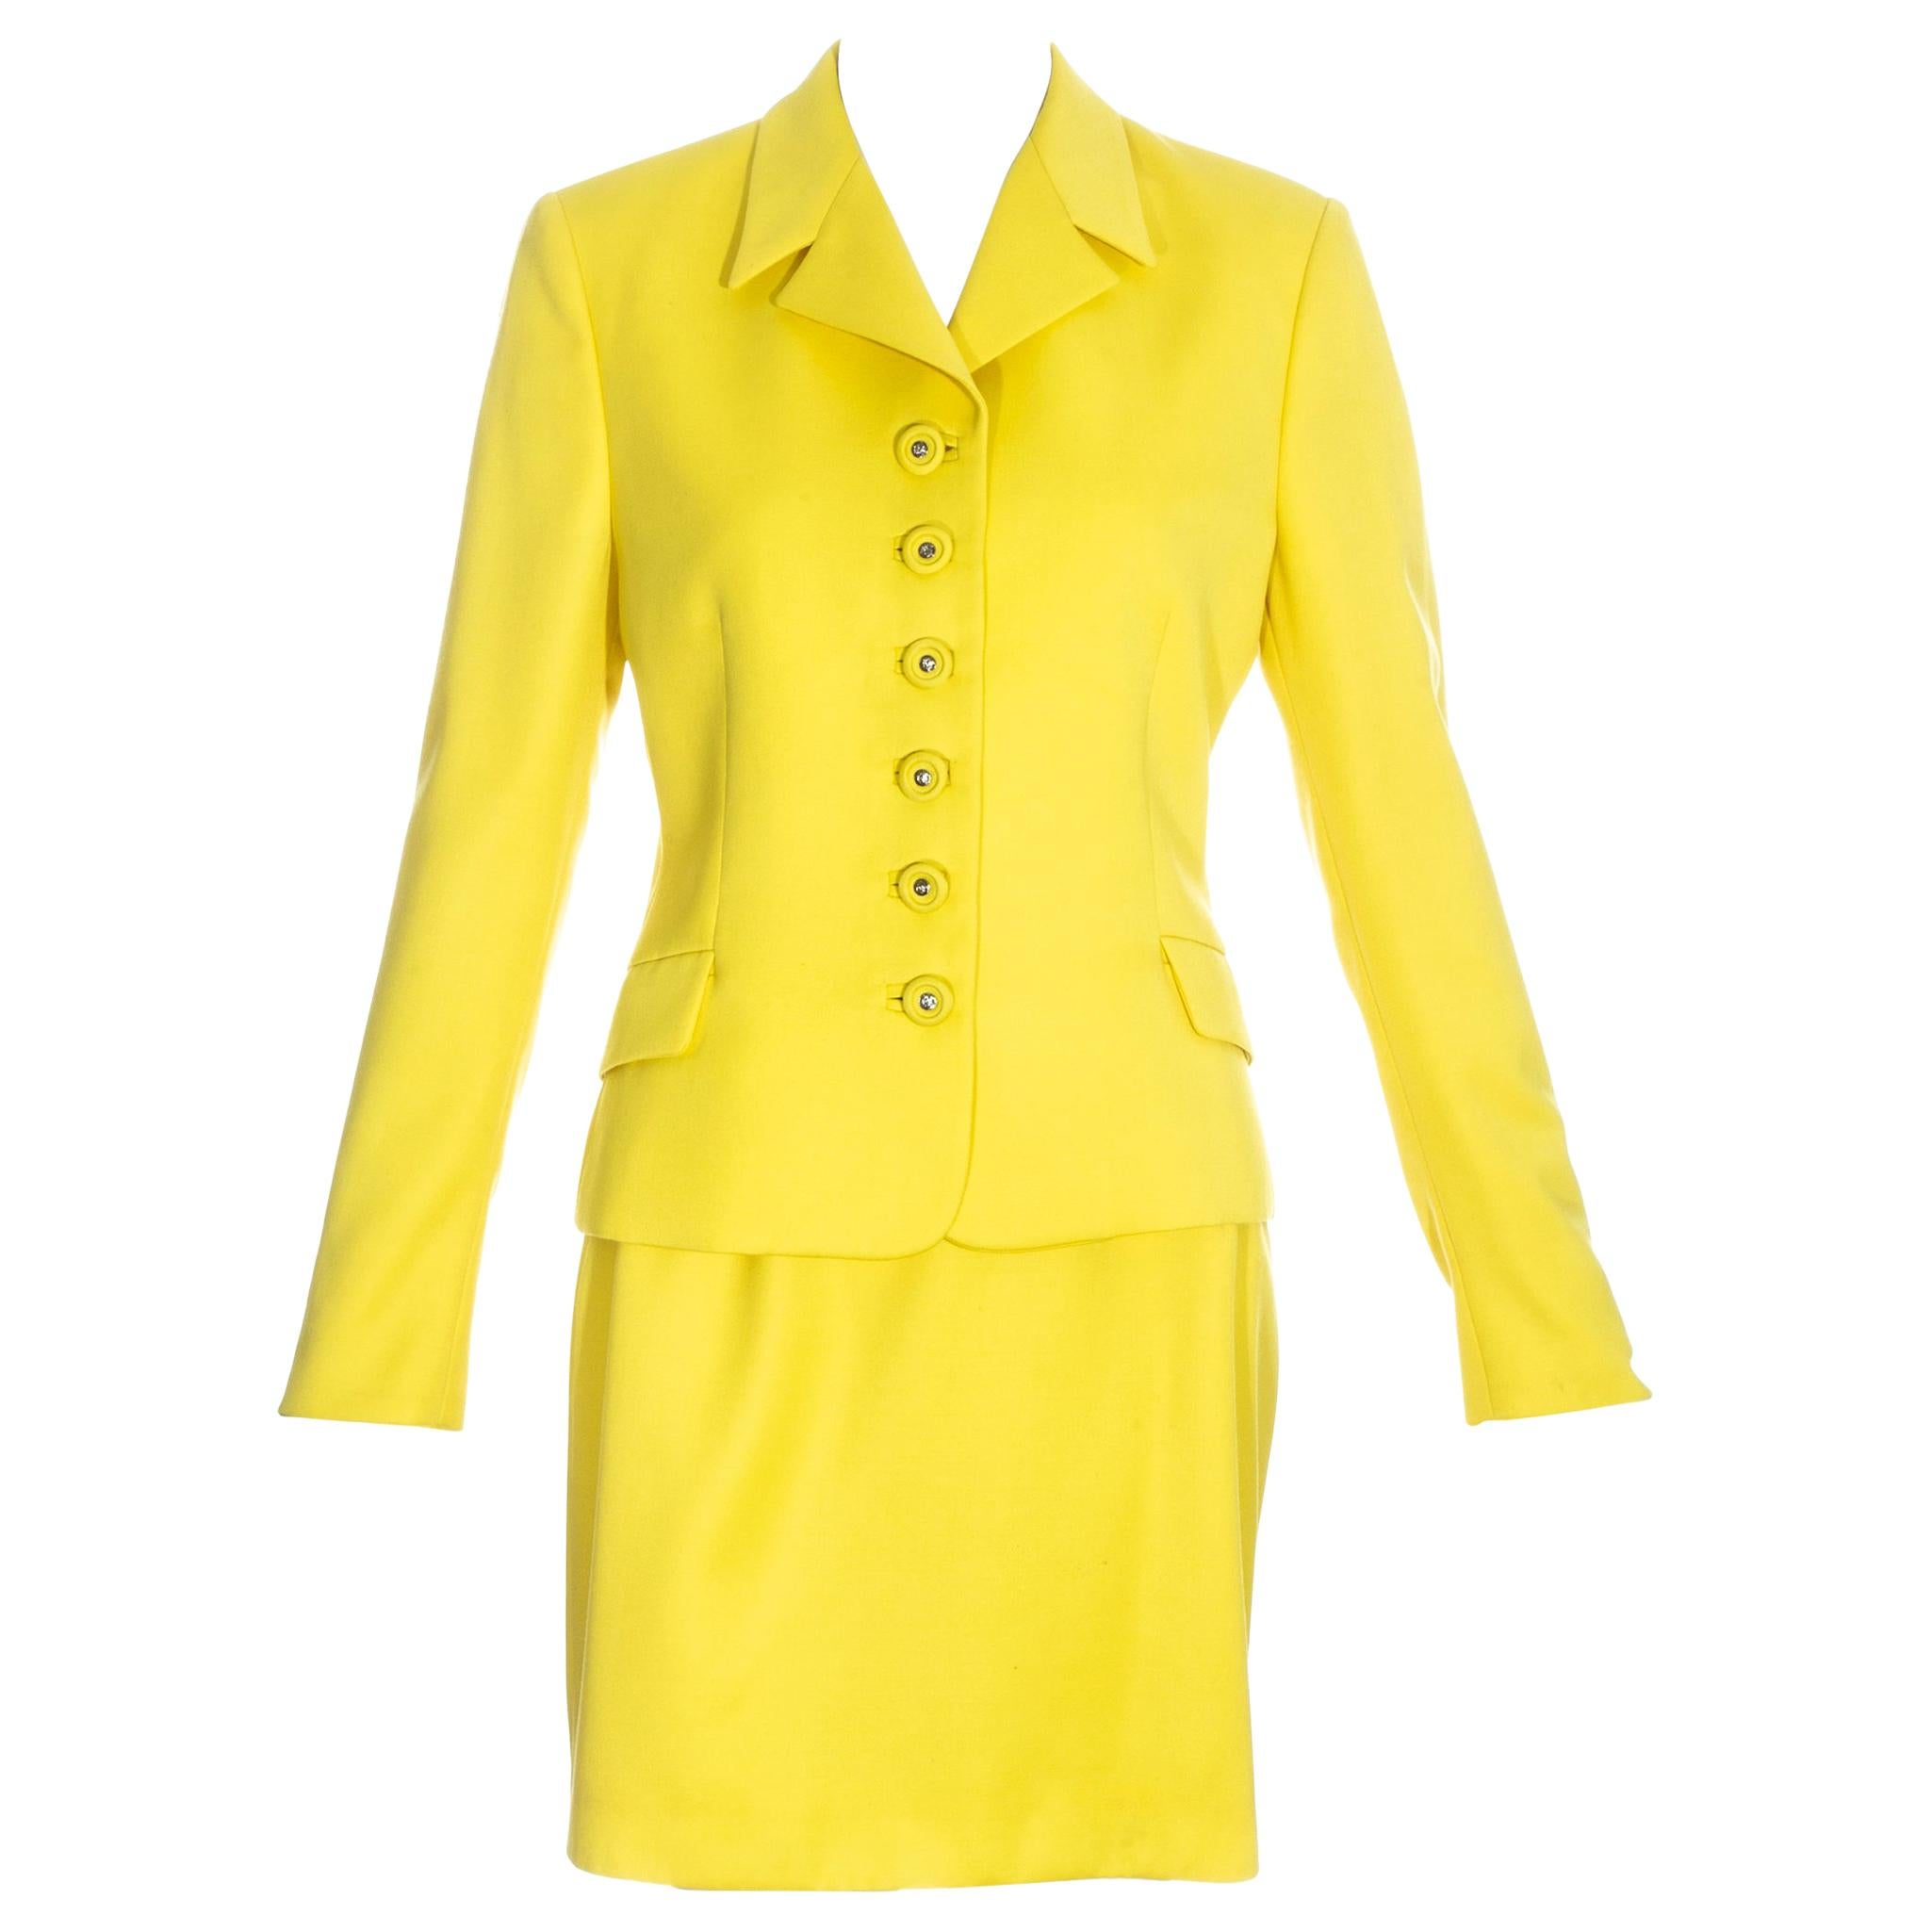 Gianni Versace Couture yellow skirt suit, ss 1996